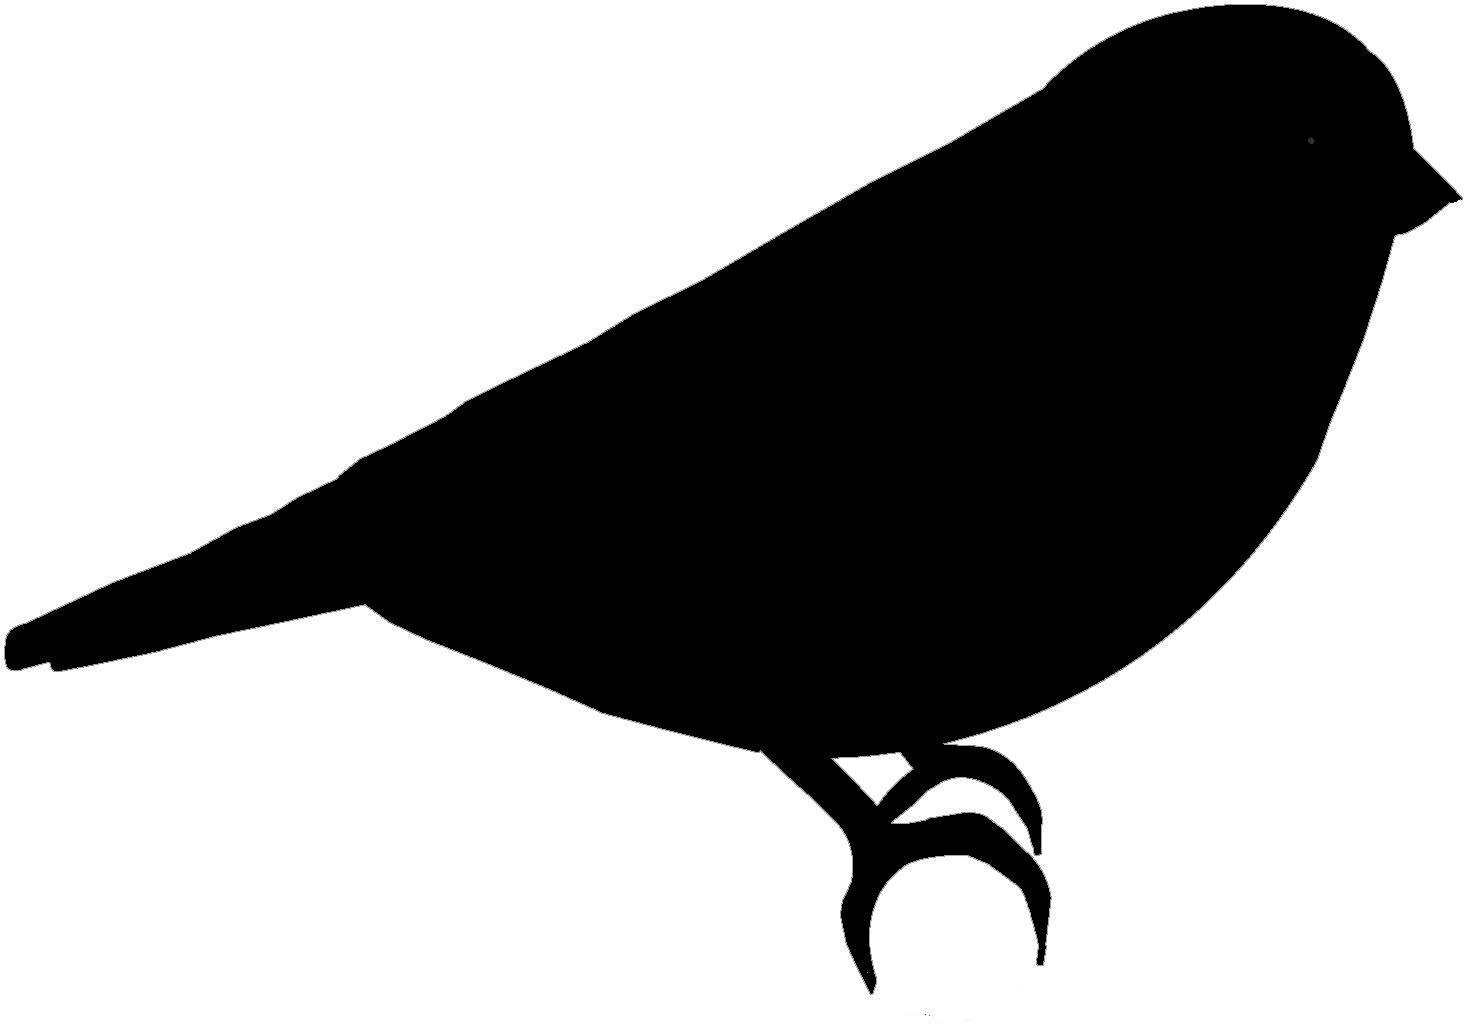 1470x1029 Bird Silhouette Silhouette Of Birds Clipart Image